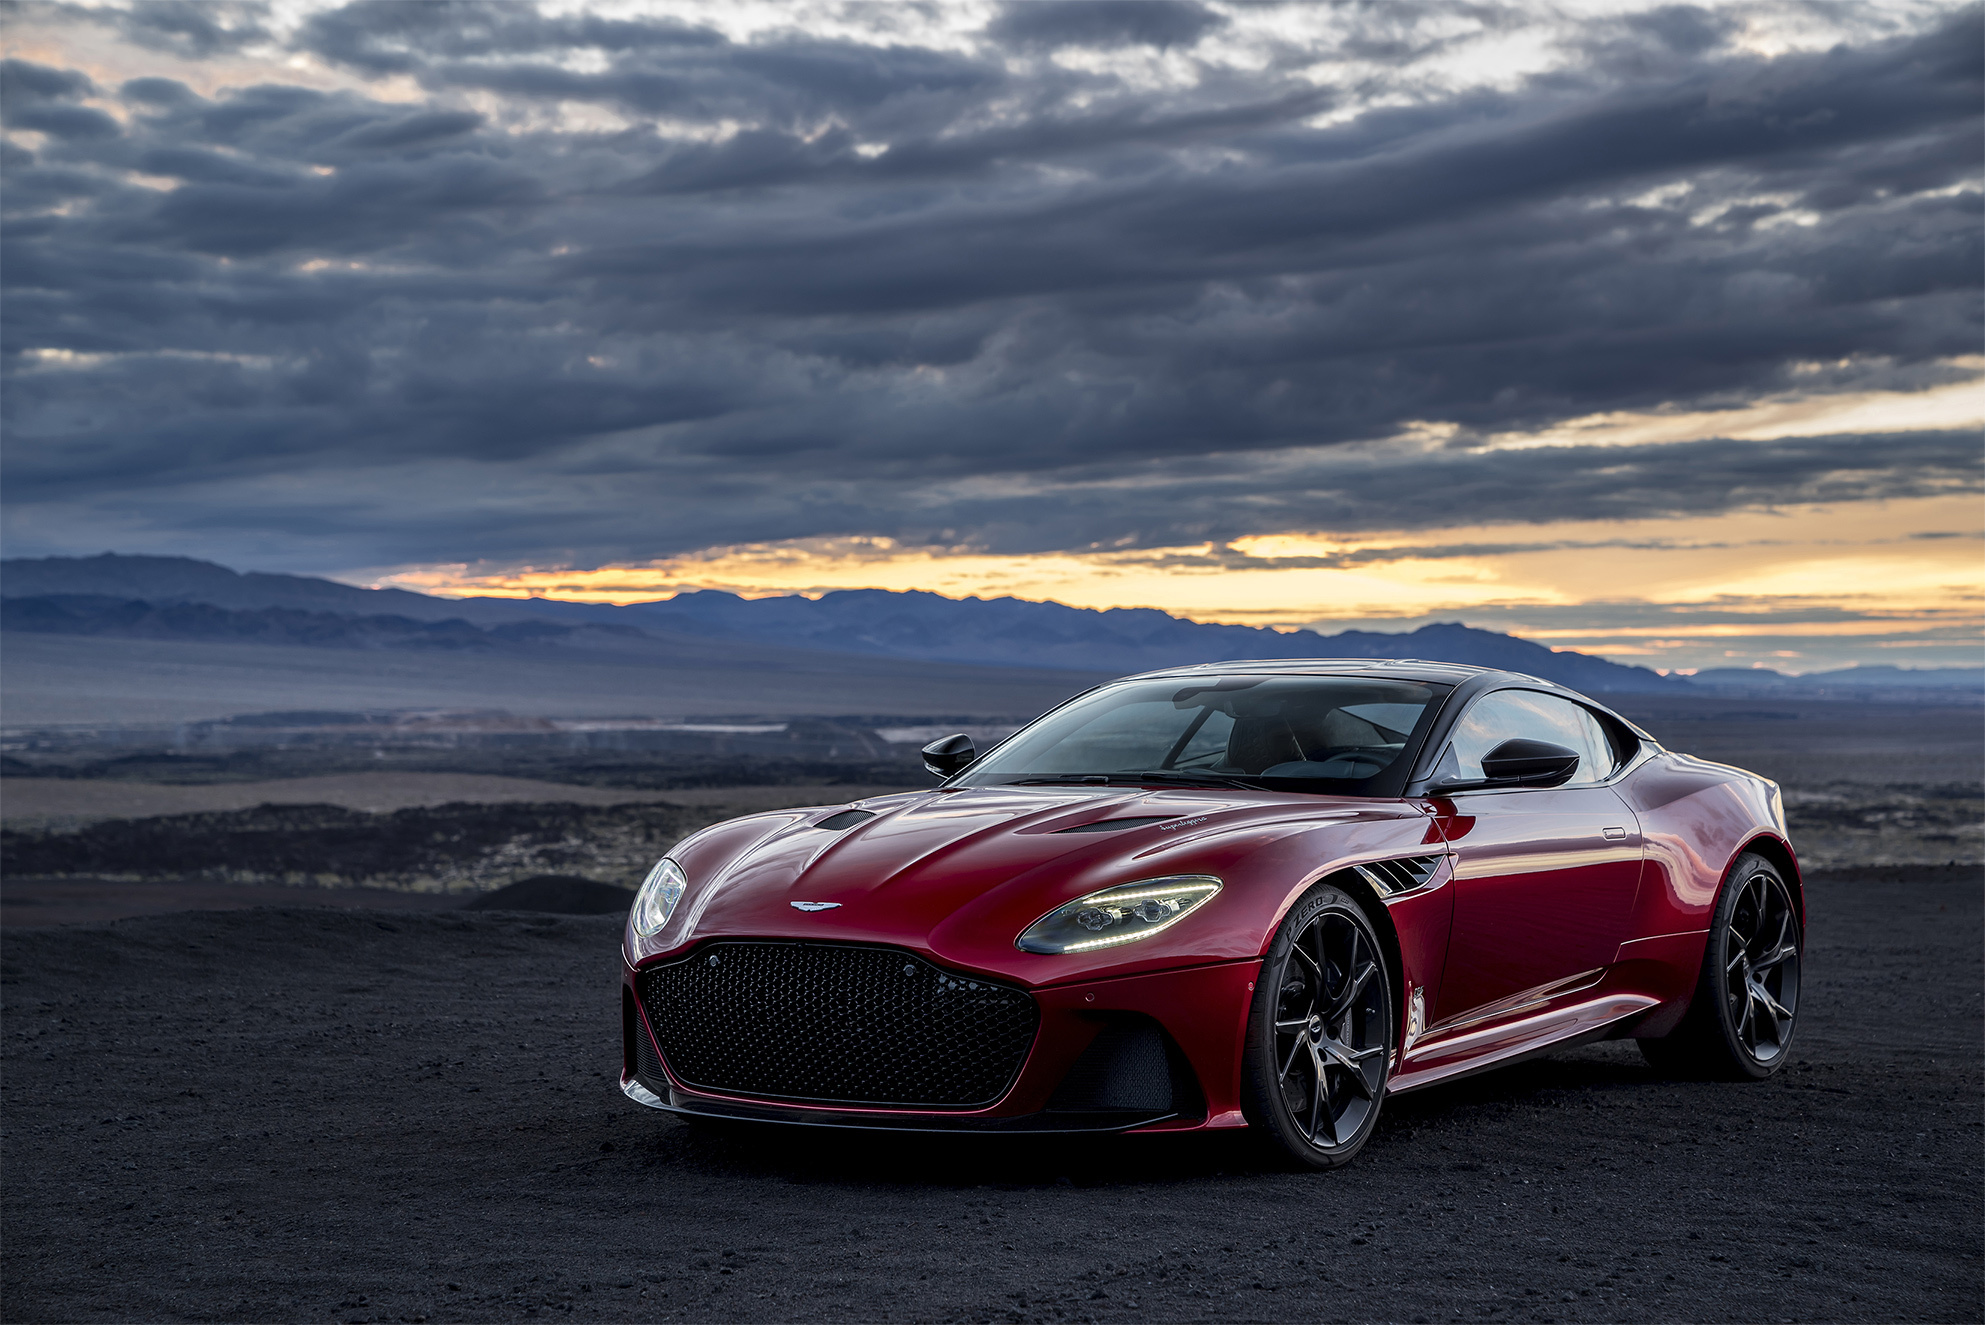 TrackWorthy - Aston Martin DBS Superleggera (1)